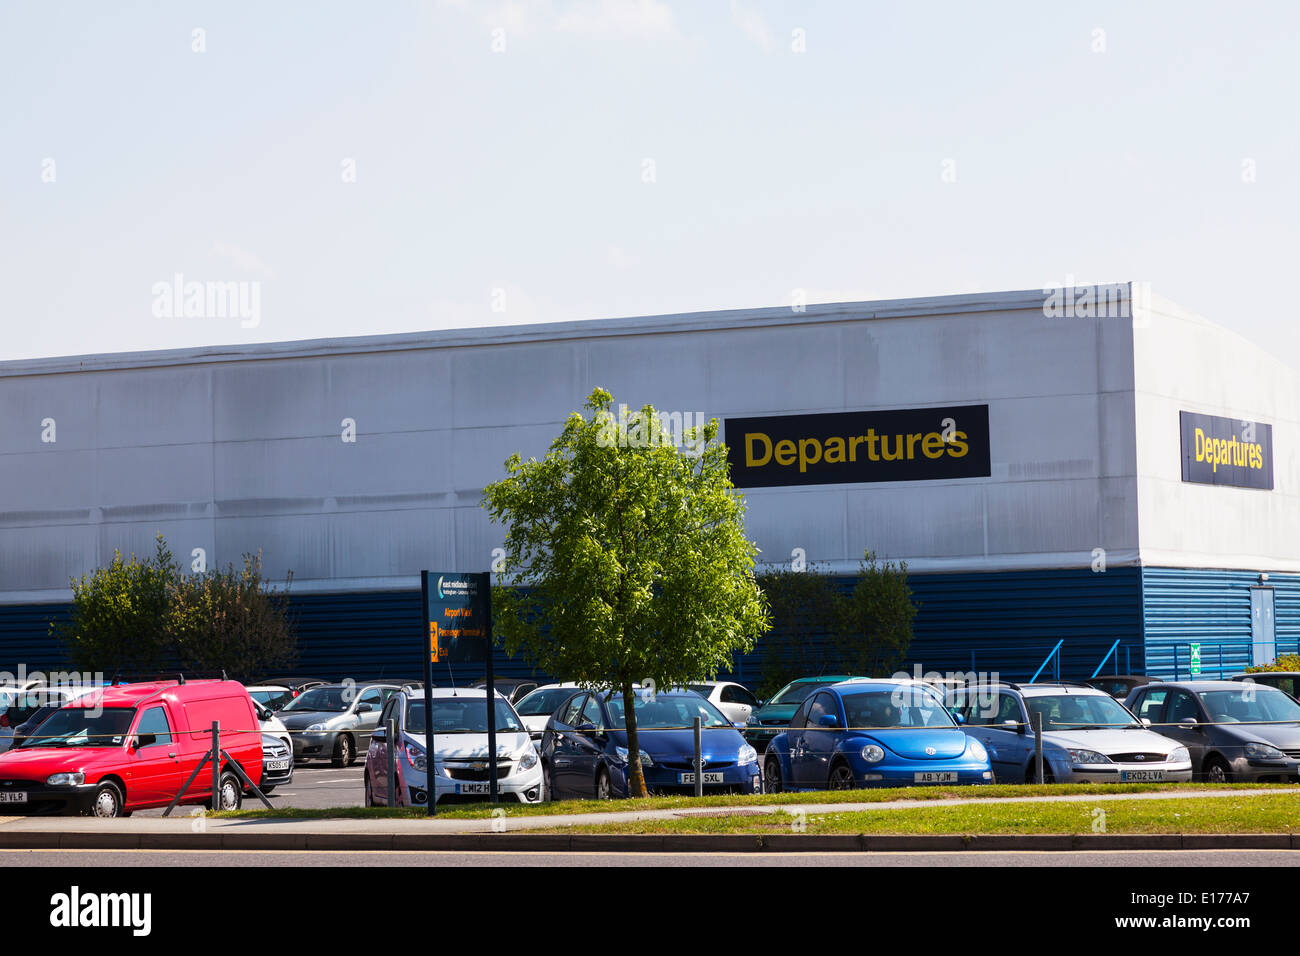 Departures building outside East Midlands airport  Nottingham airport england - Stock Image